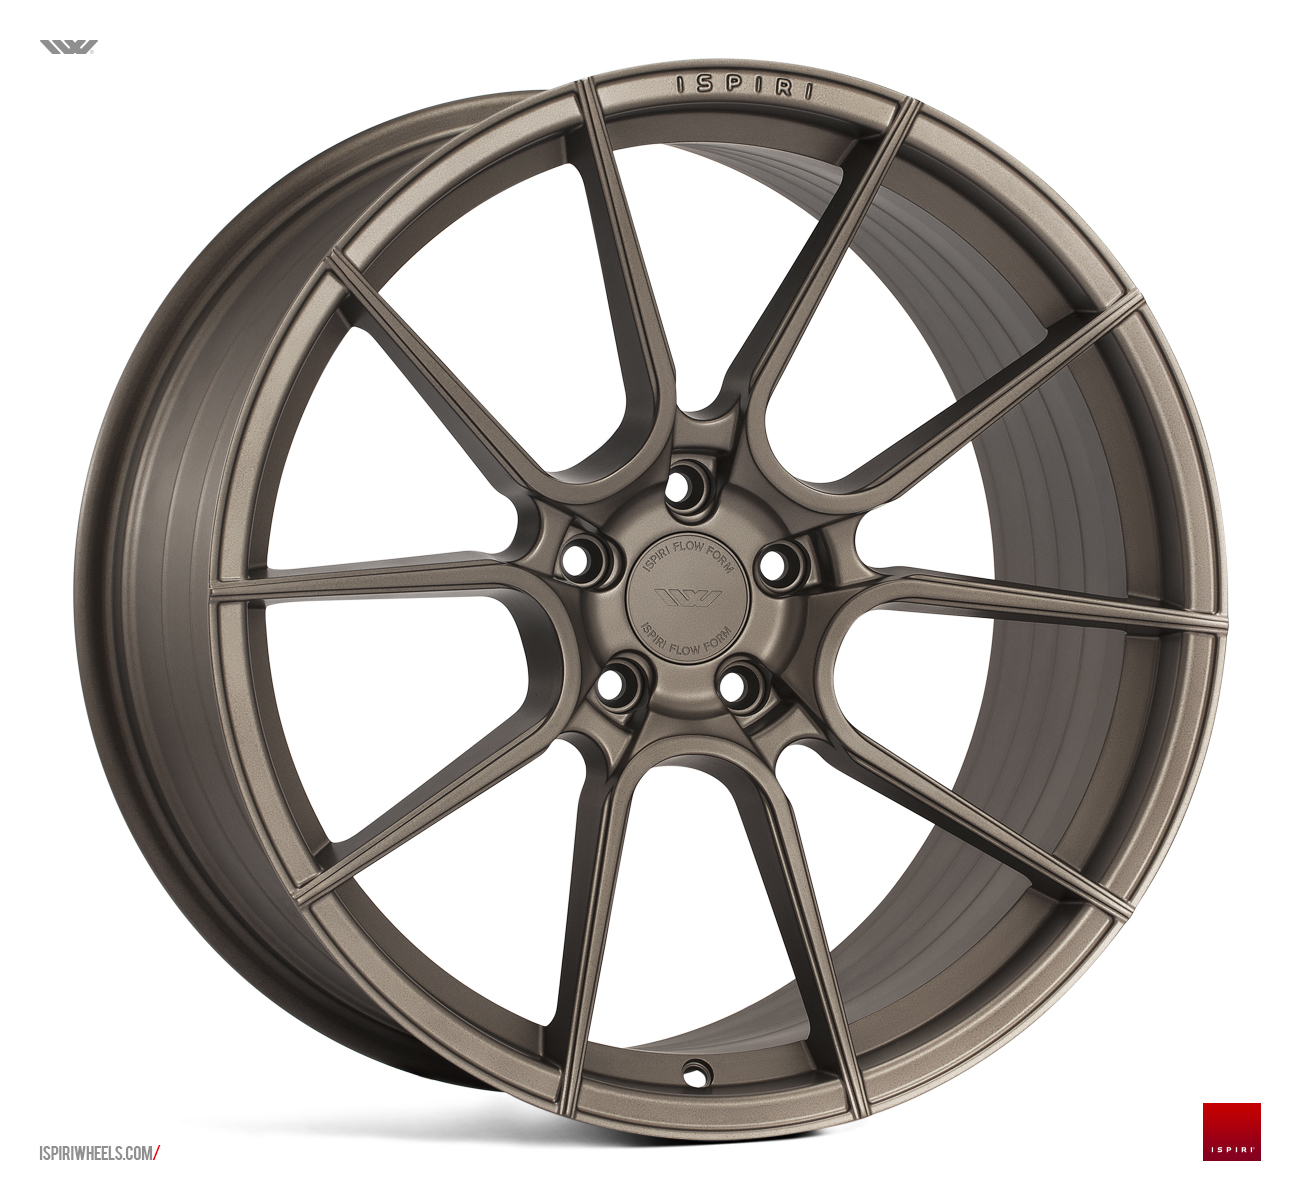 "NEW 20"" ISPIRI FFR6 TWIN 5 SPOKE ALLOY WHEELS IN MATT CARBON BRONZE, WIDER 10"" or 10.5"" REAR"